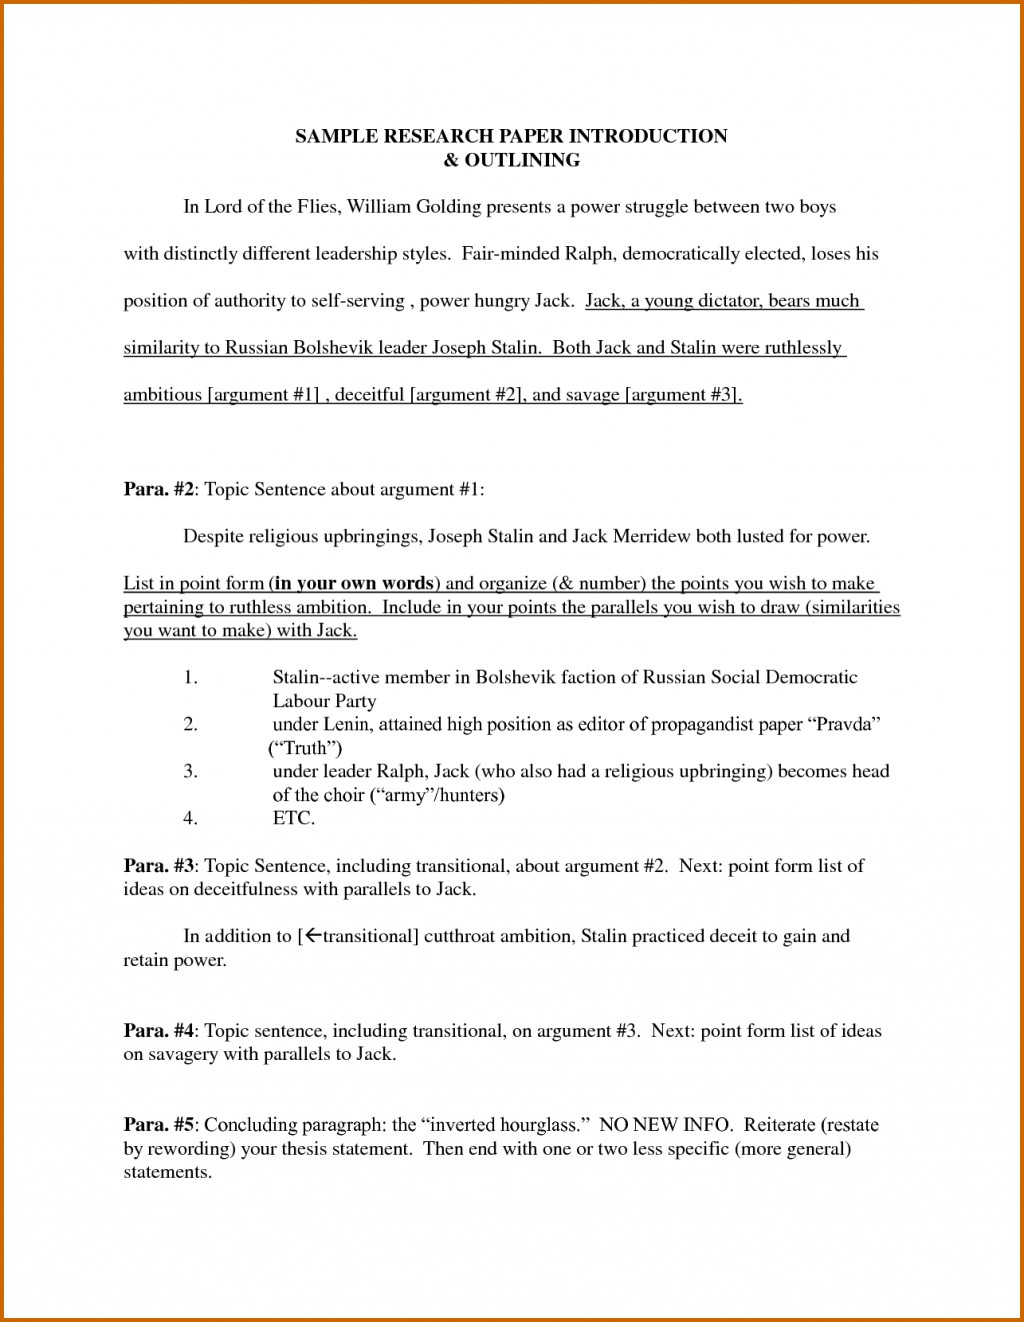 011 How To Make Research Paper Introduction For Term Sample Fascinating A In Tagalog An Effective Example Large